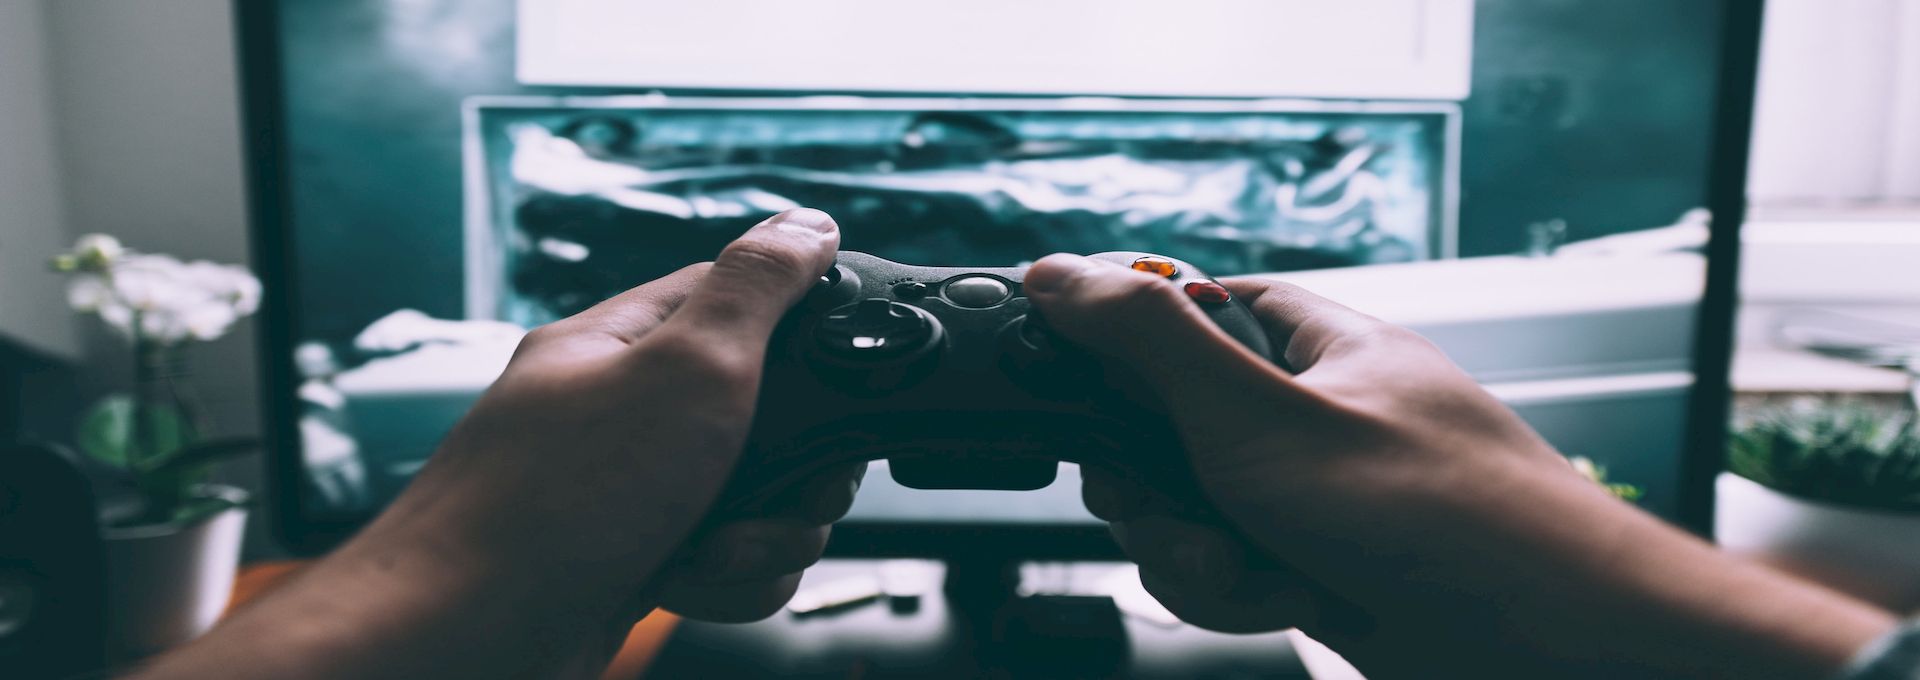 Why Identifying Gaming Influencers Requires a Different Approach